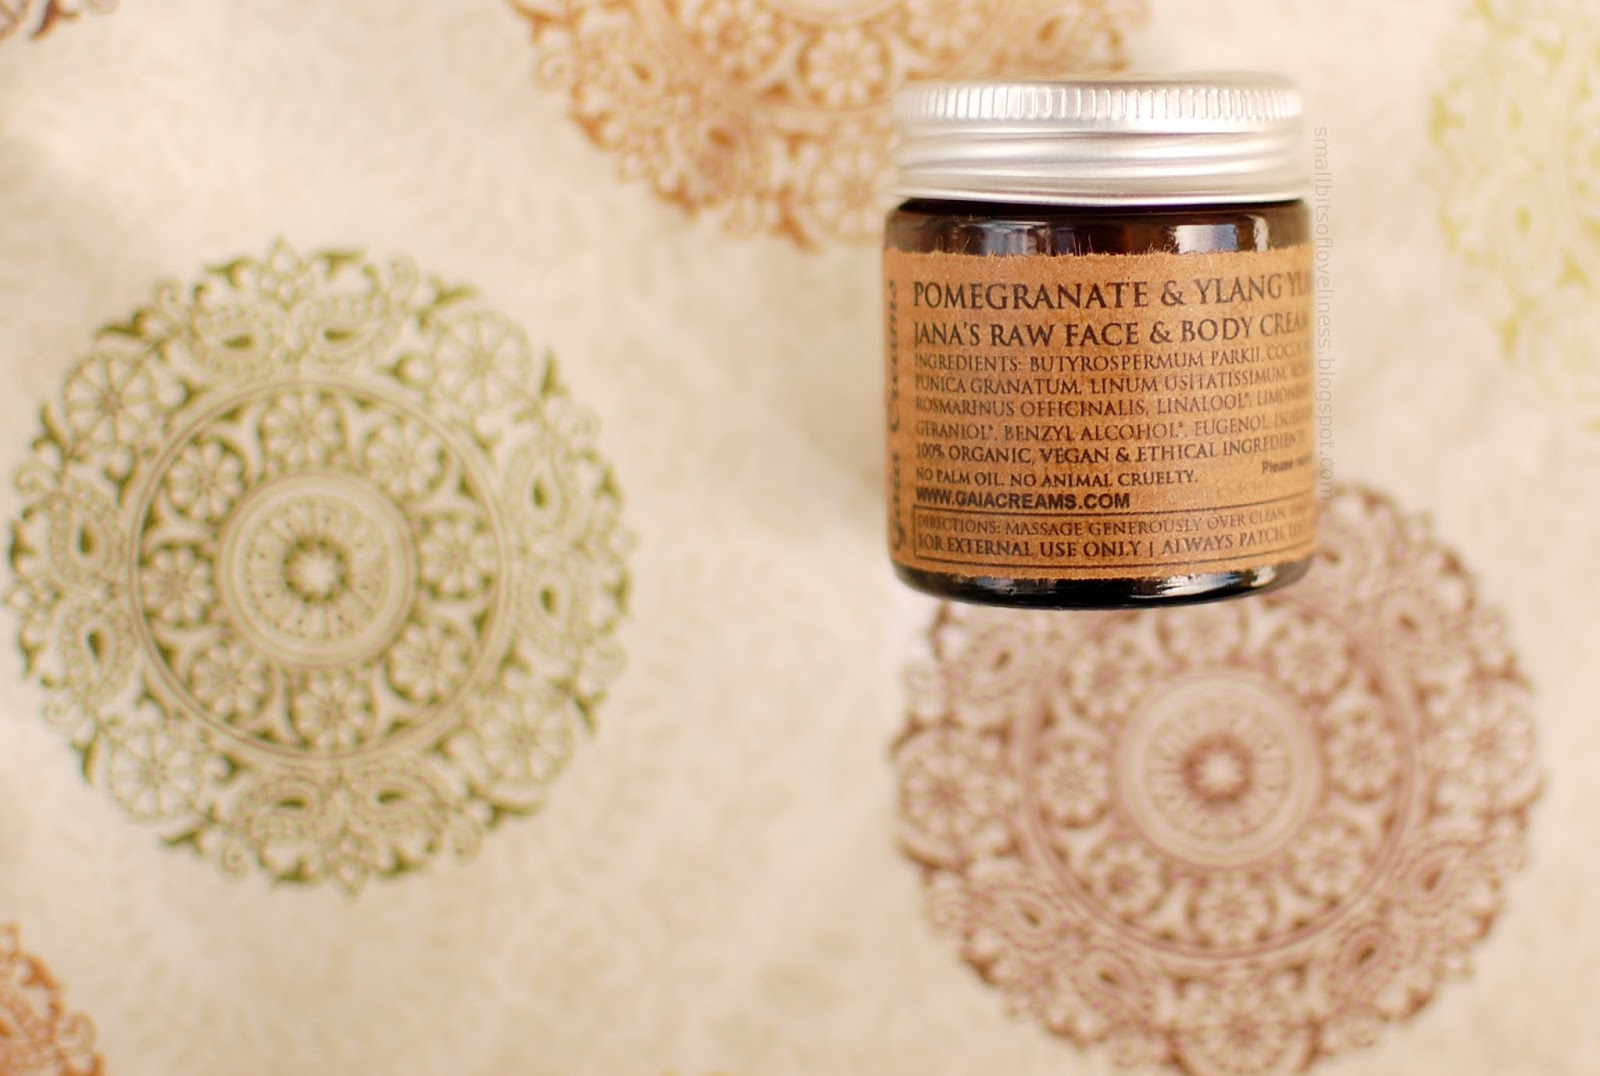 Gaia Creams Pomegranate & Ylang Ylang Raw Face & Body Cream